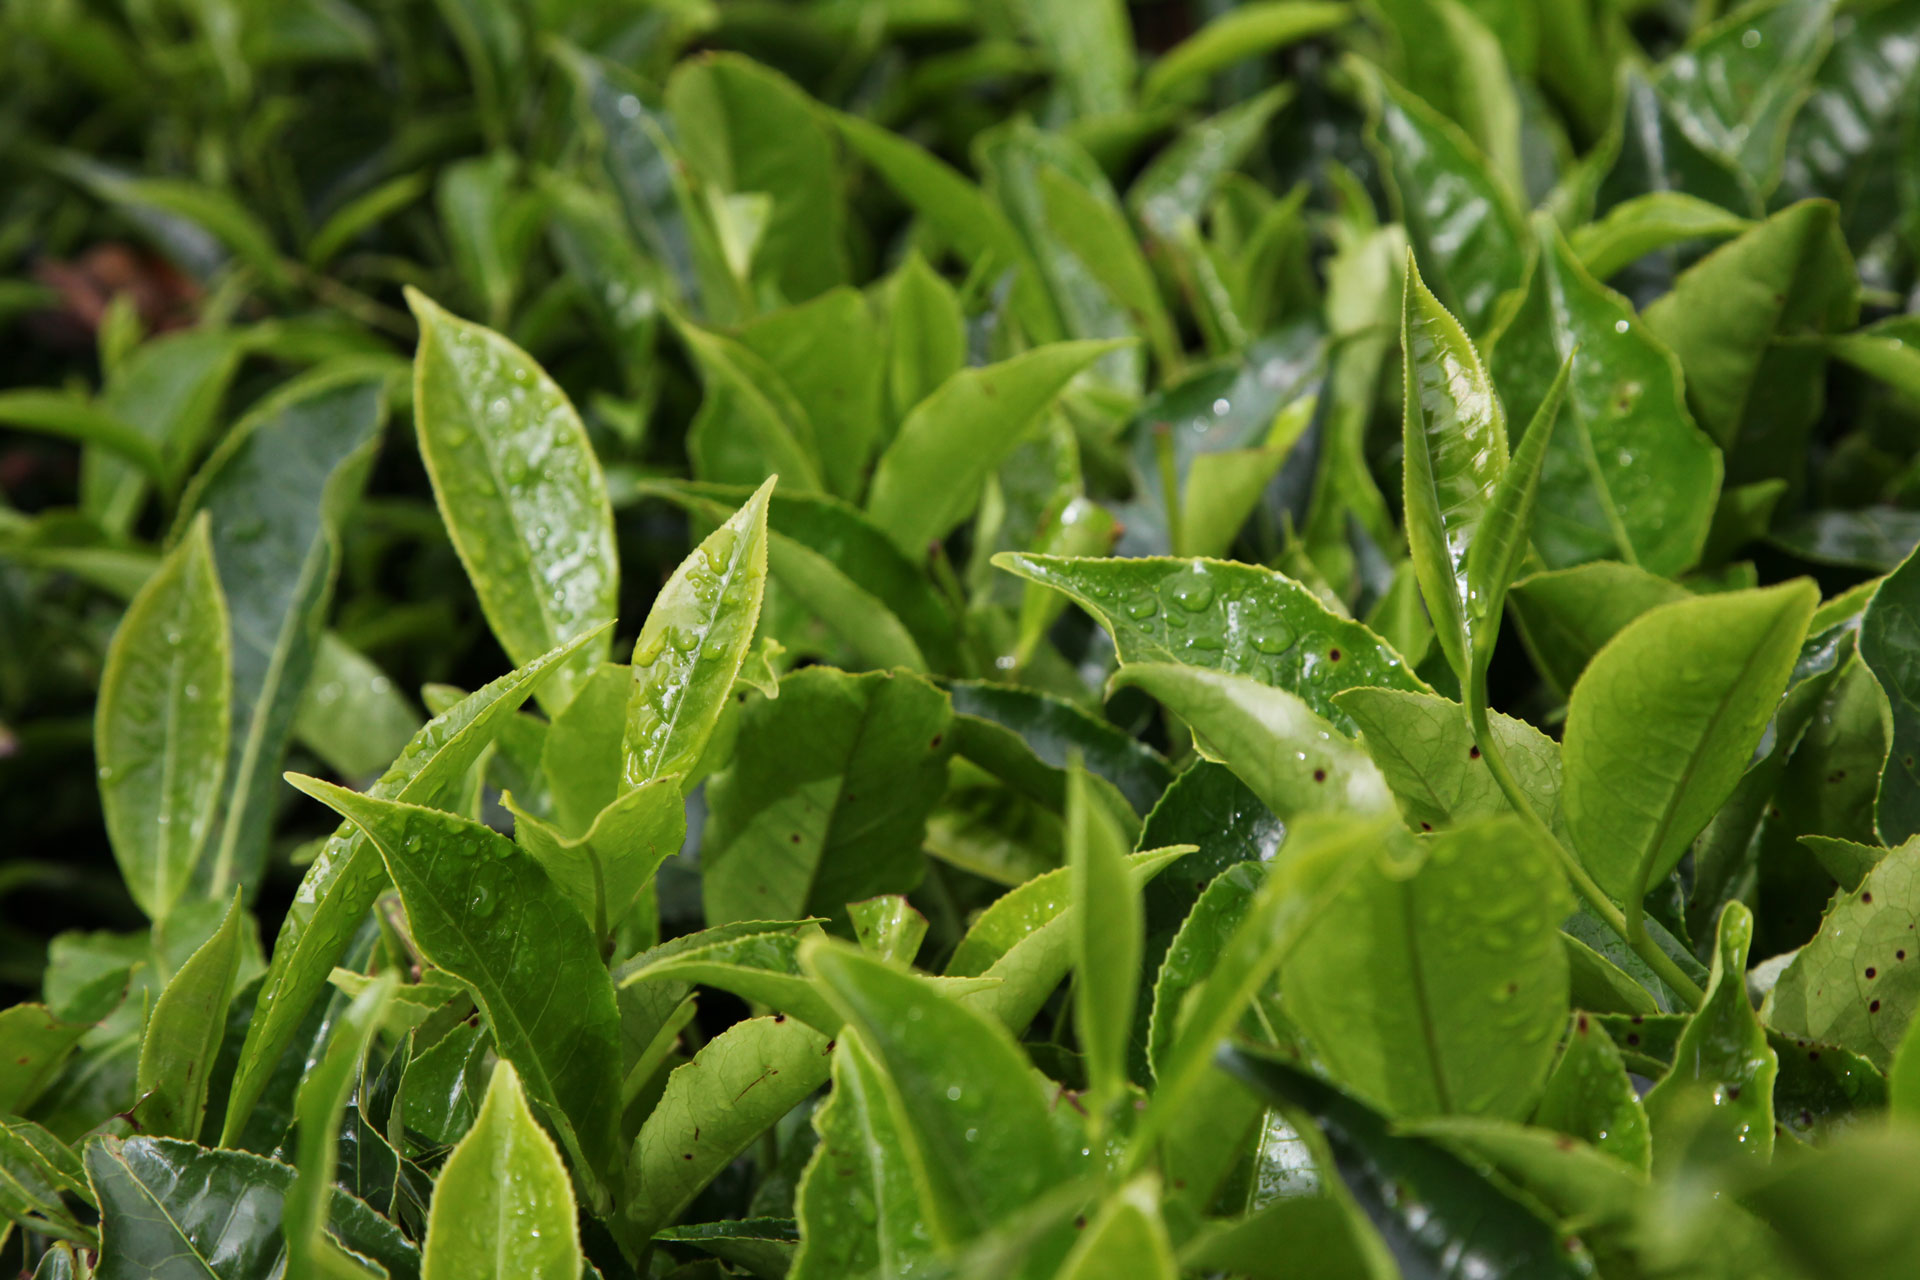 Photograph of Tea Leaves